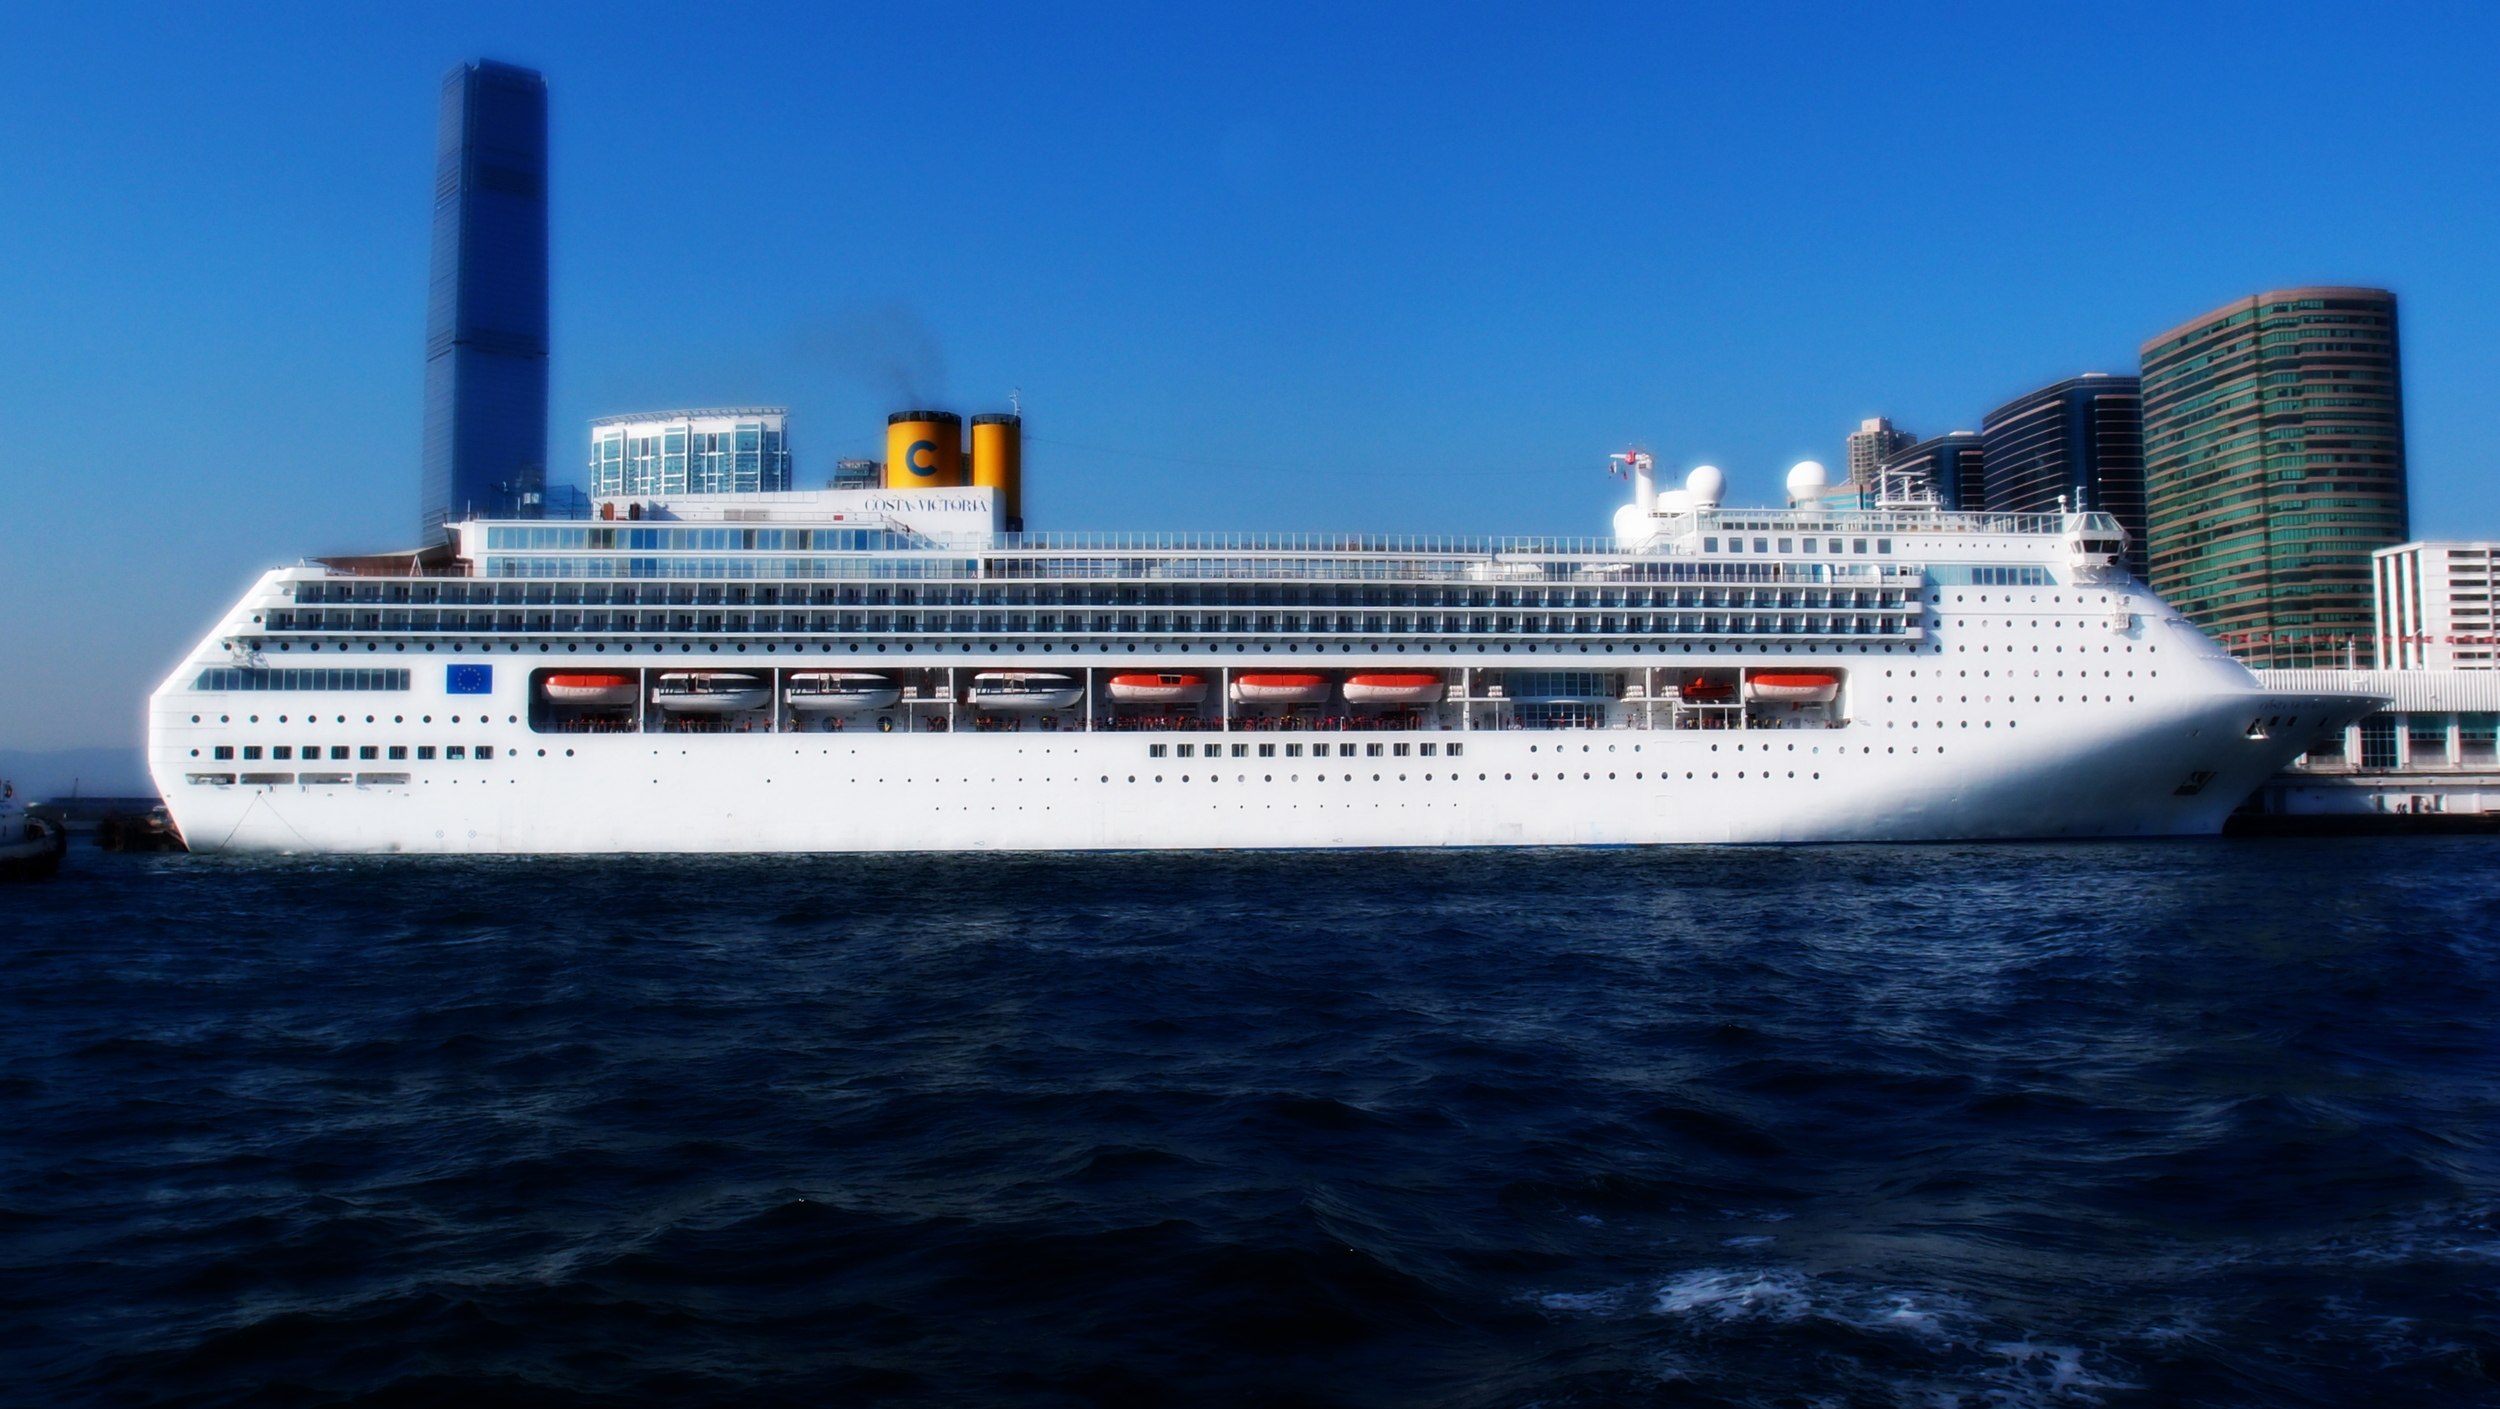 The Costa Victoria was in Hong Kong for a few days and looked quite regal parked at the Ocean Terminal.